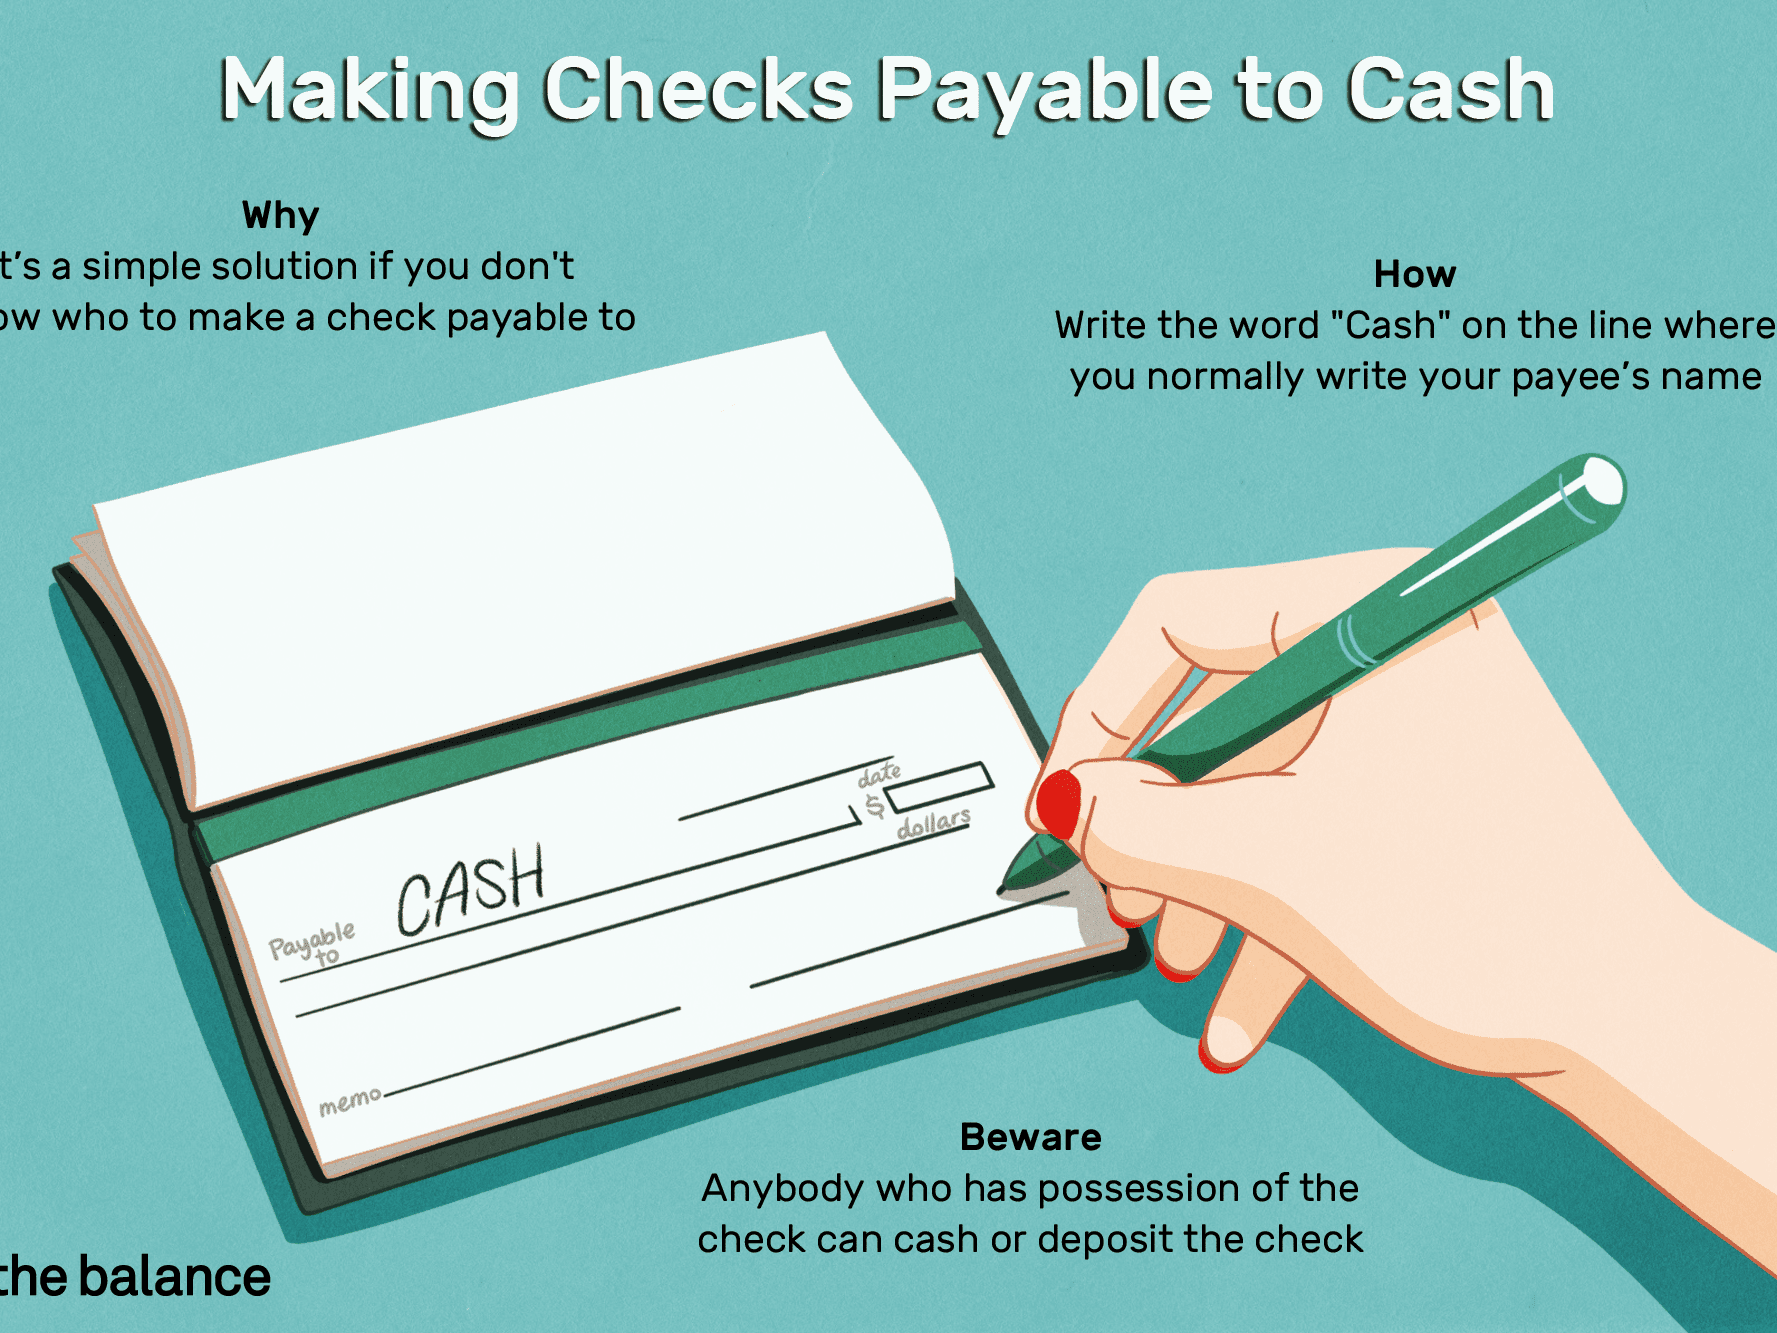 How to Write and Cash Checks Payable to Cash